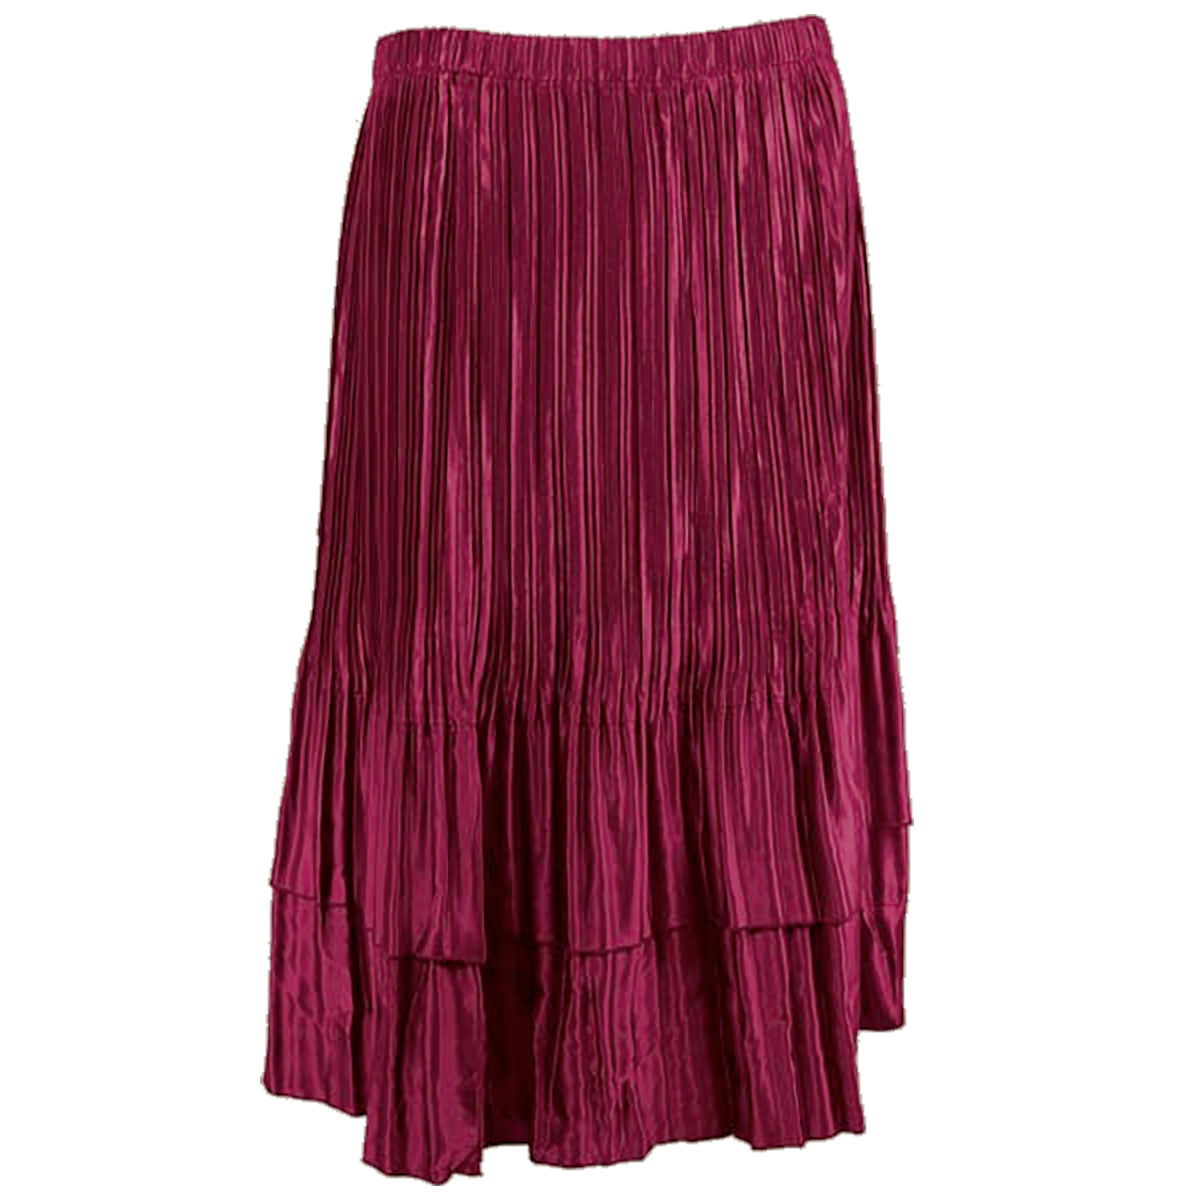 Wholesale Skirts - Satin Mini Pleat Tiered* Solid Ruby - One Size (S-XL)